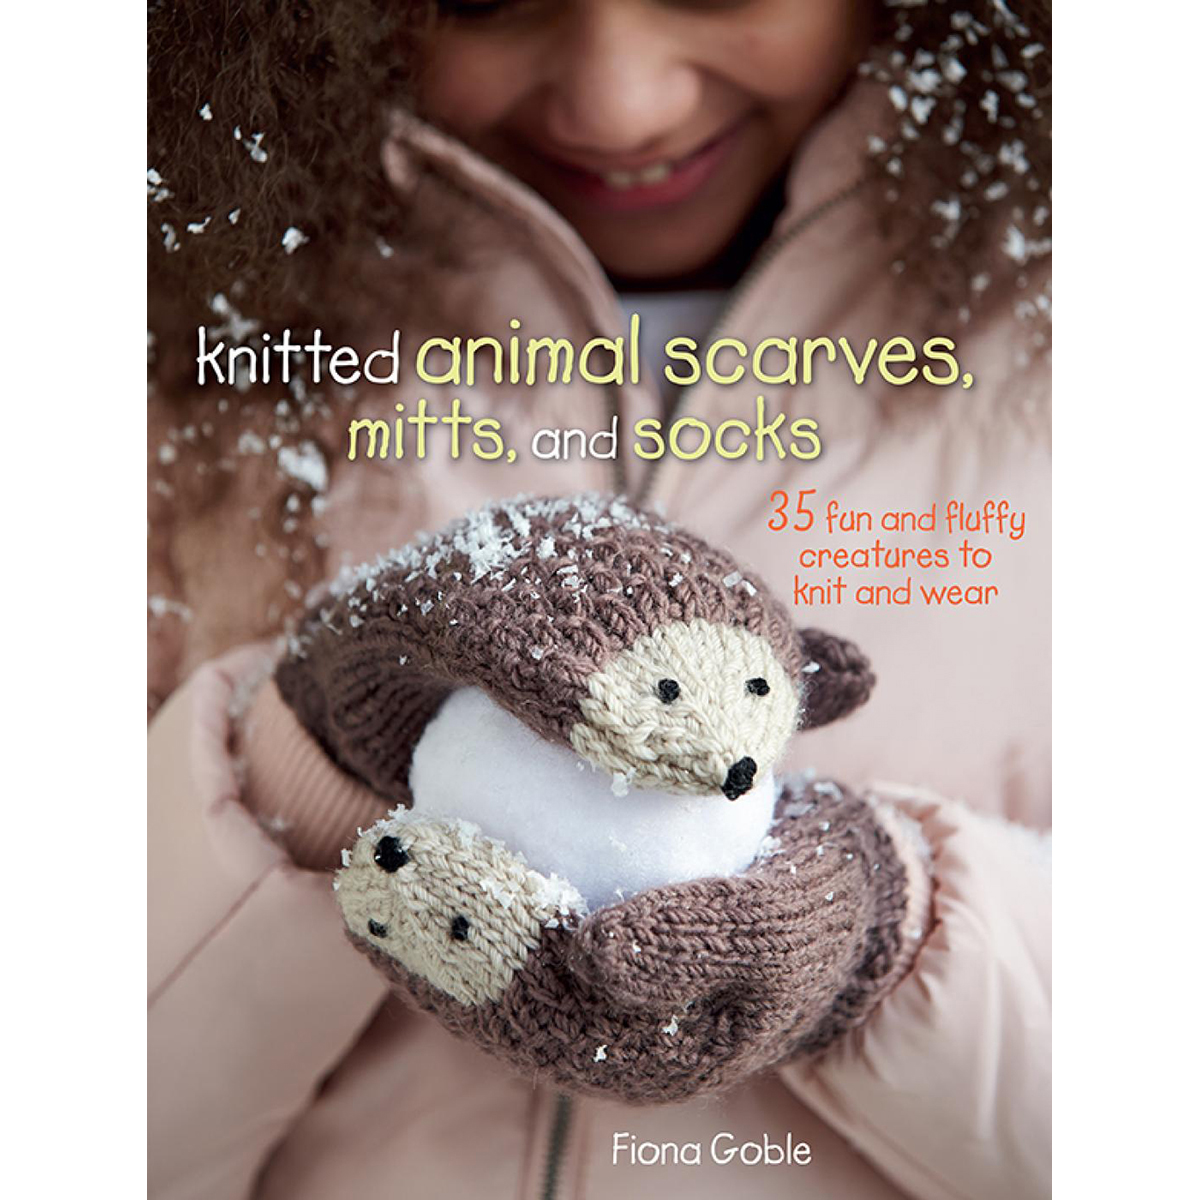 Cico Books-Knitted Animal Scarves, Mitts,